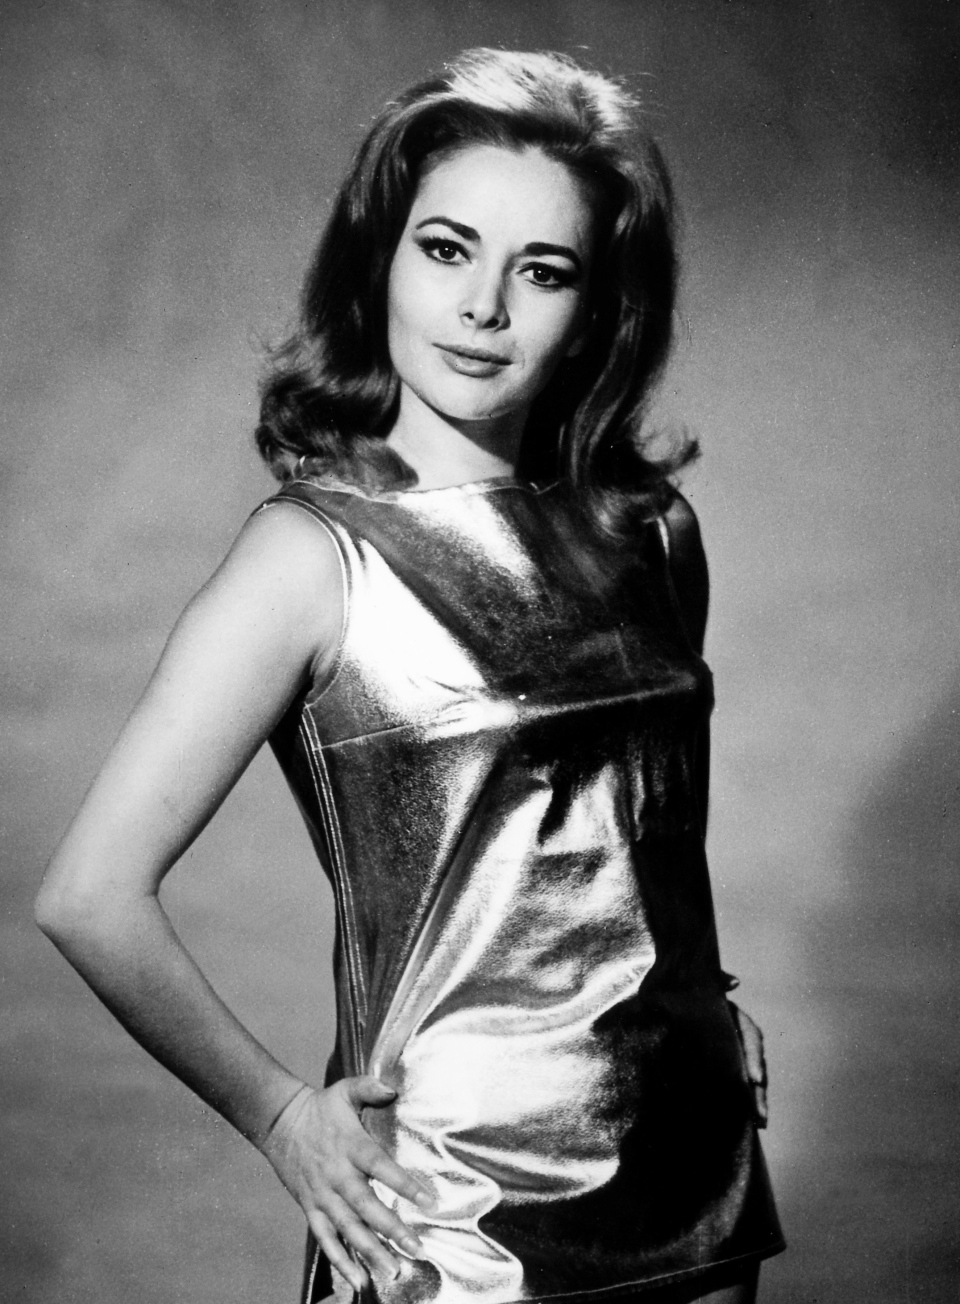 The April 1967 file photo shows actress Karin Dor. Dor, who played an assassin sent to kill James Bond in 1967 'You Only Live Twice' has died. She was 79. (dpa via AP)